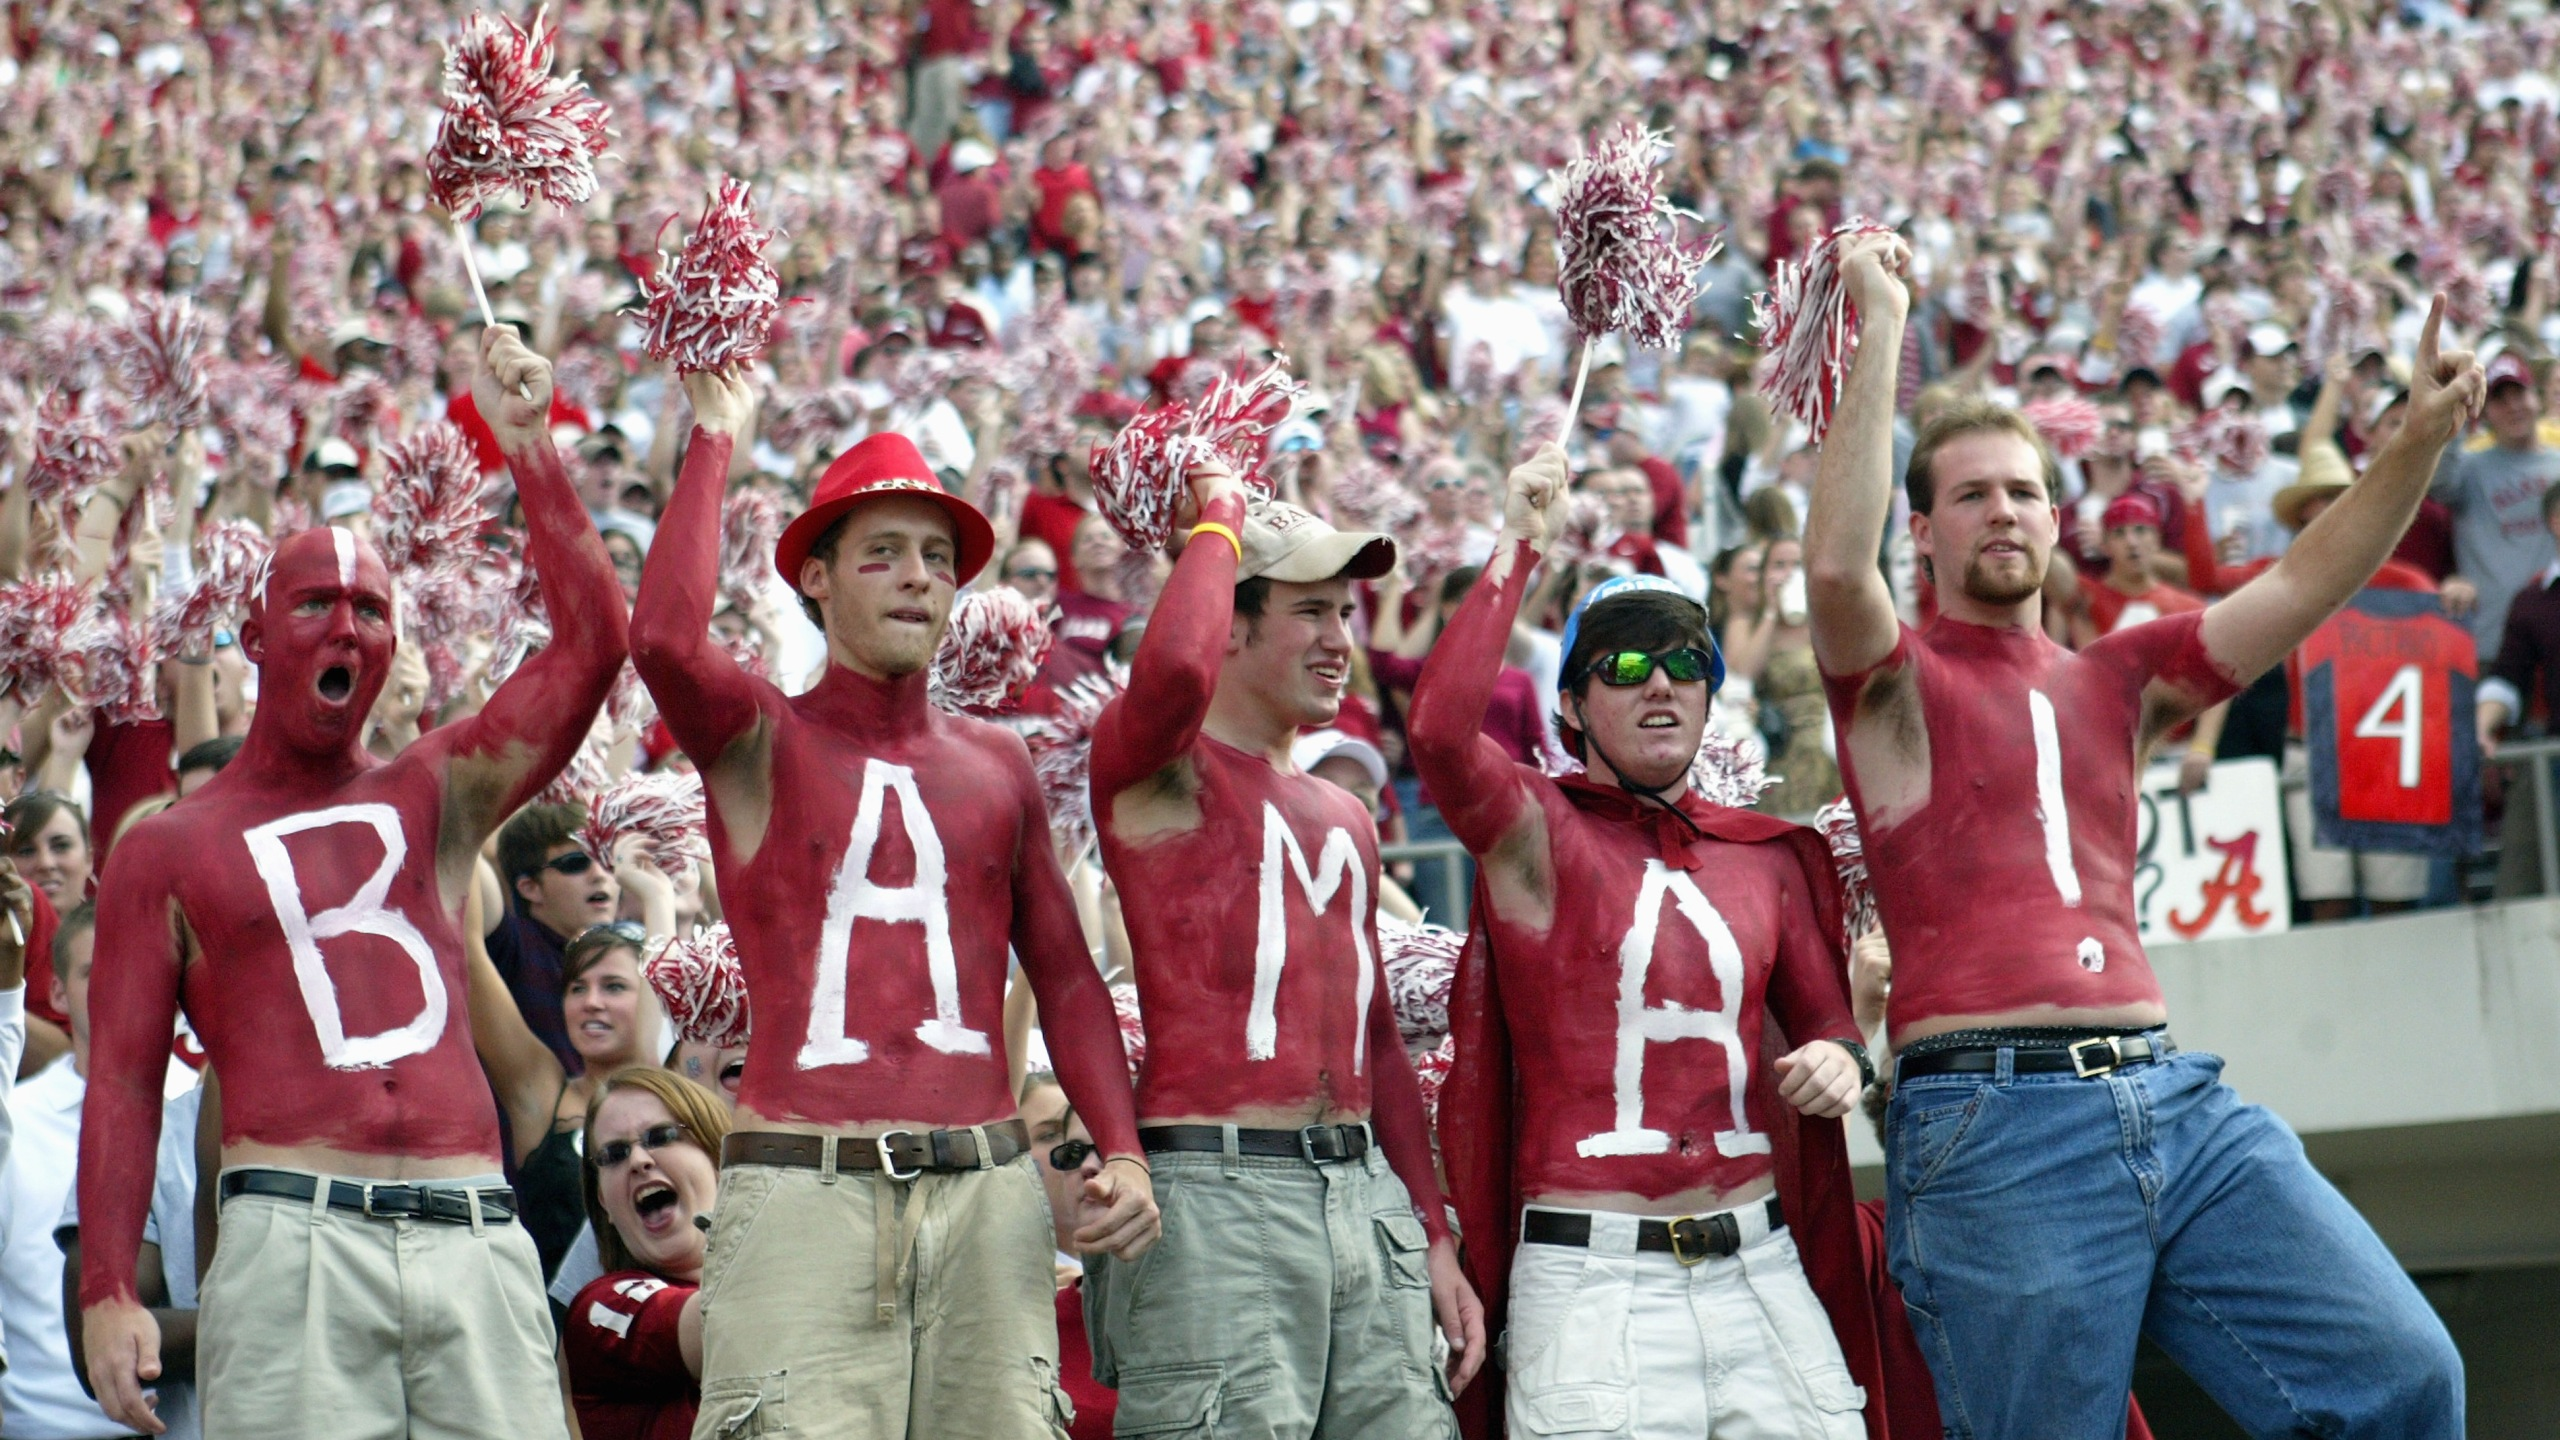 Fans of the University of Alabama Crimson Tide display their body paint during the game with the Louisiana State University Tigers on November 12, 2005 at at Bryant-Denny Stadium in Tuscaloosa, Alabama. (Credit: Chris Graythen/Getty Images)